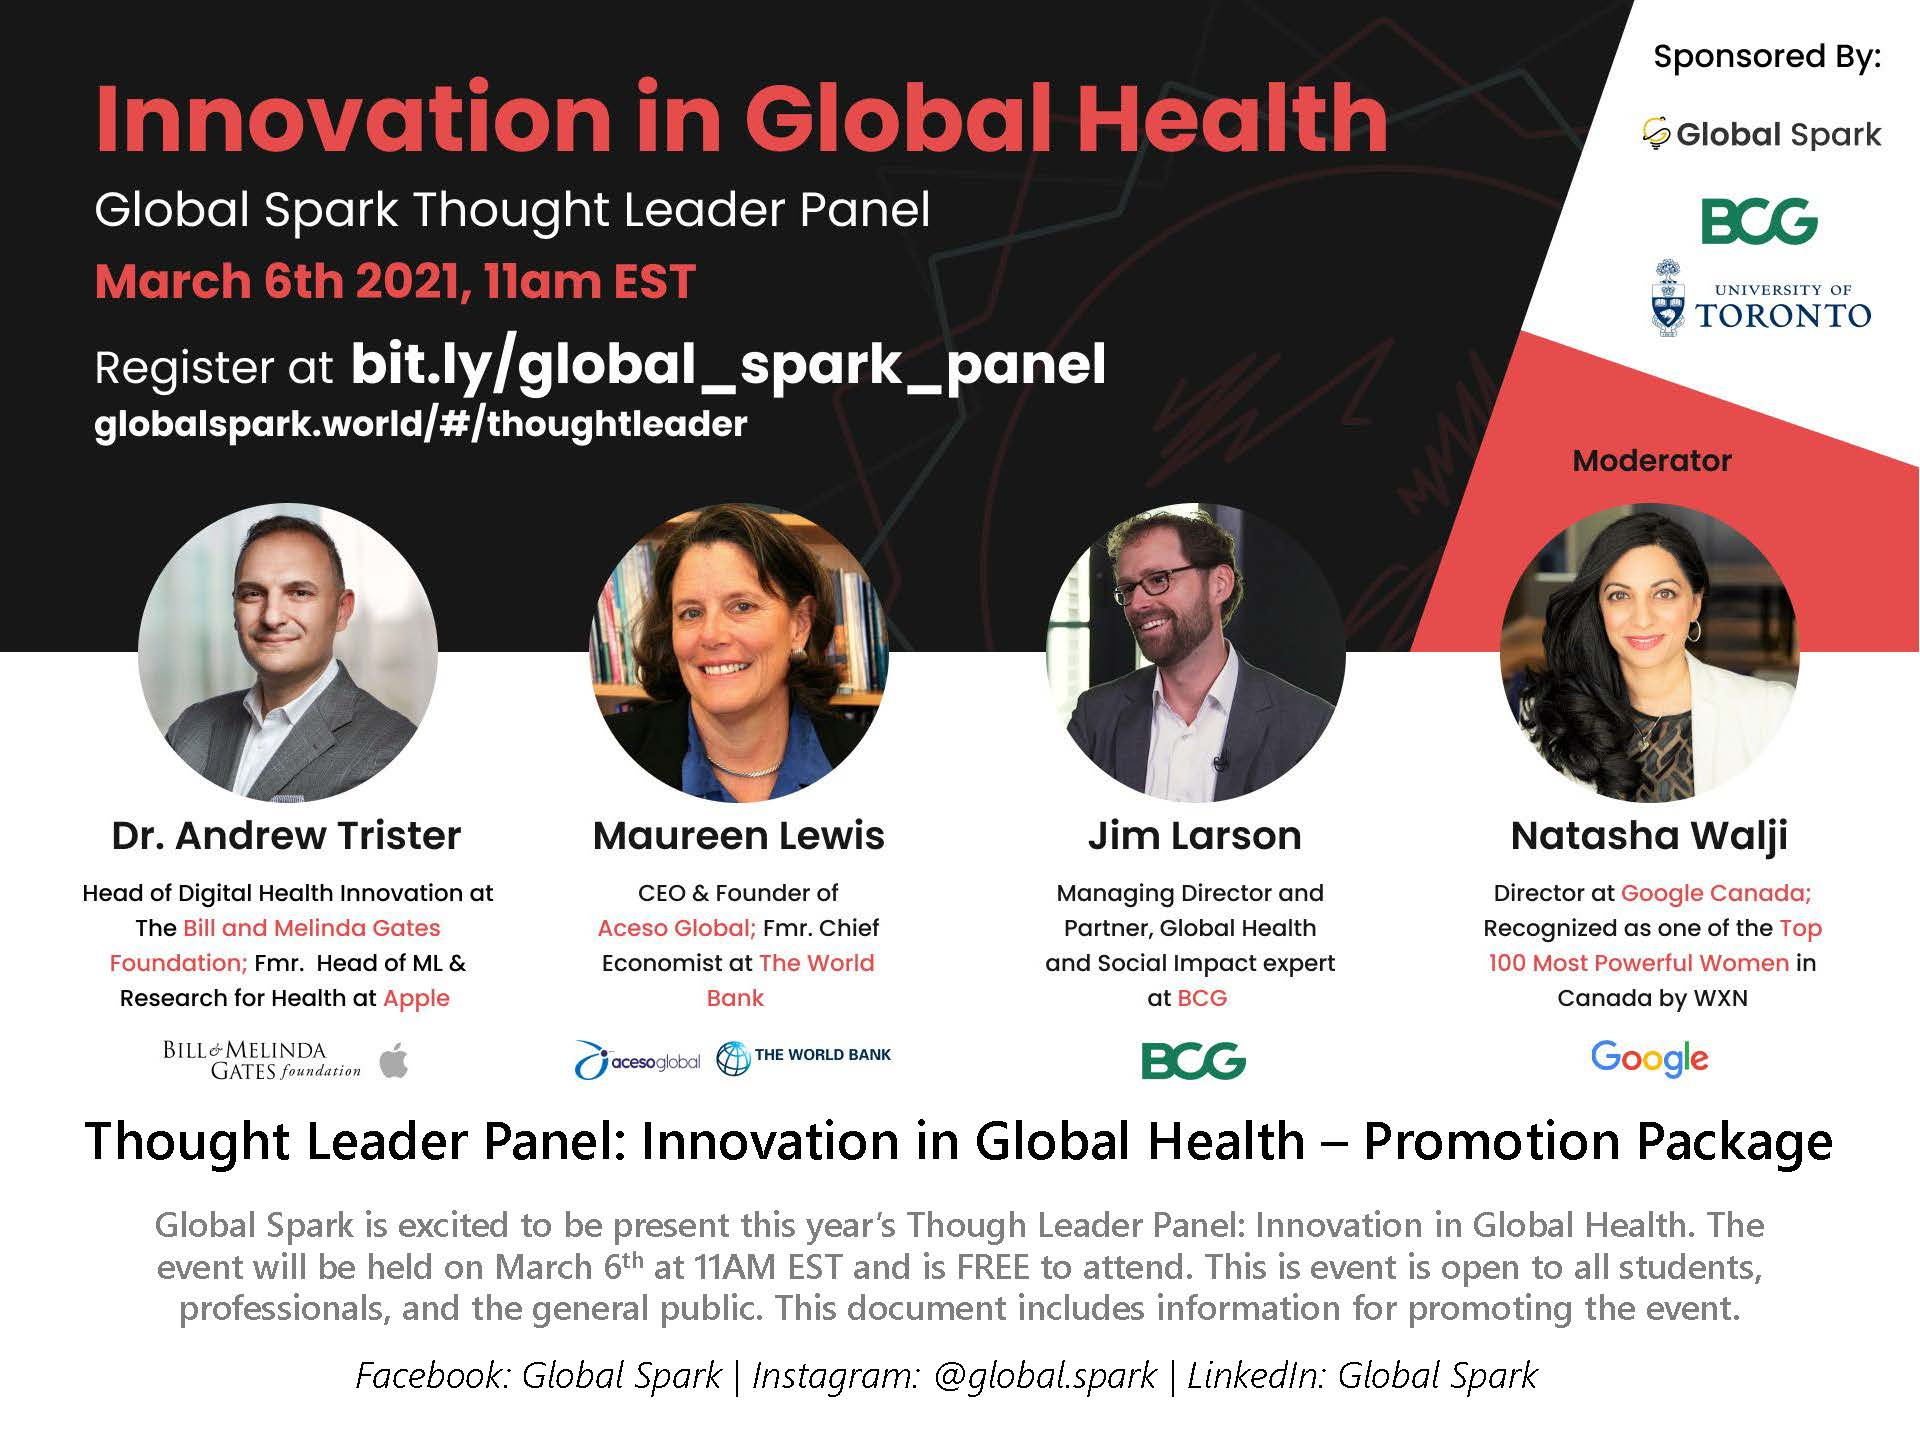 FREE! Global Spark Thought Leader Panel: Innovation in Global Health